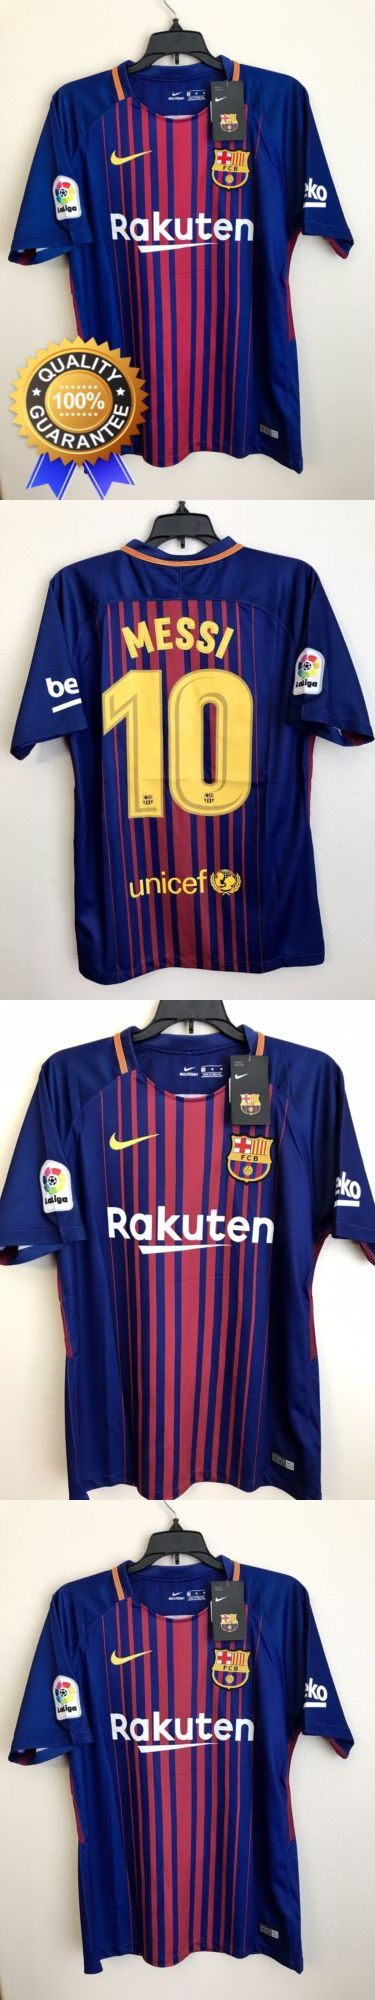 Men 123490: Hot Sale?? New Fc Barcelona Messi #10 Home Soccer Jersey, Size M Medium -> BUY IT NOW ONLY: $38.99 on eBay!